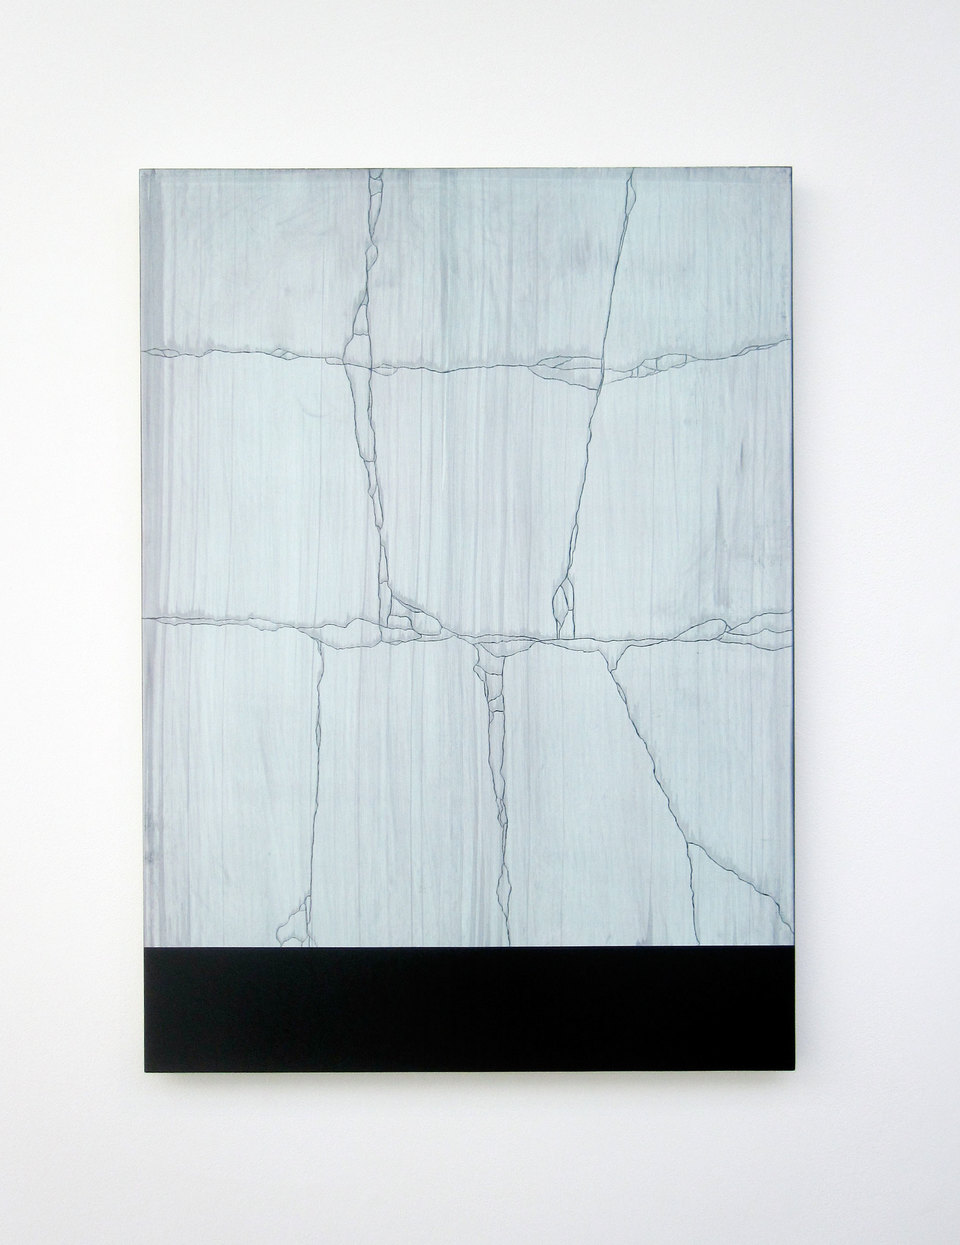 Andy Jackson, Tablet Tablet (A View from Peckham Rye), 2010, Acrylic and Metallic Acrylic on Board, (h.860mm x w.620mm), Cell Project Space